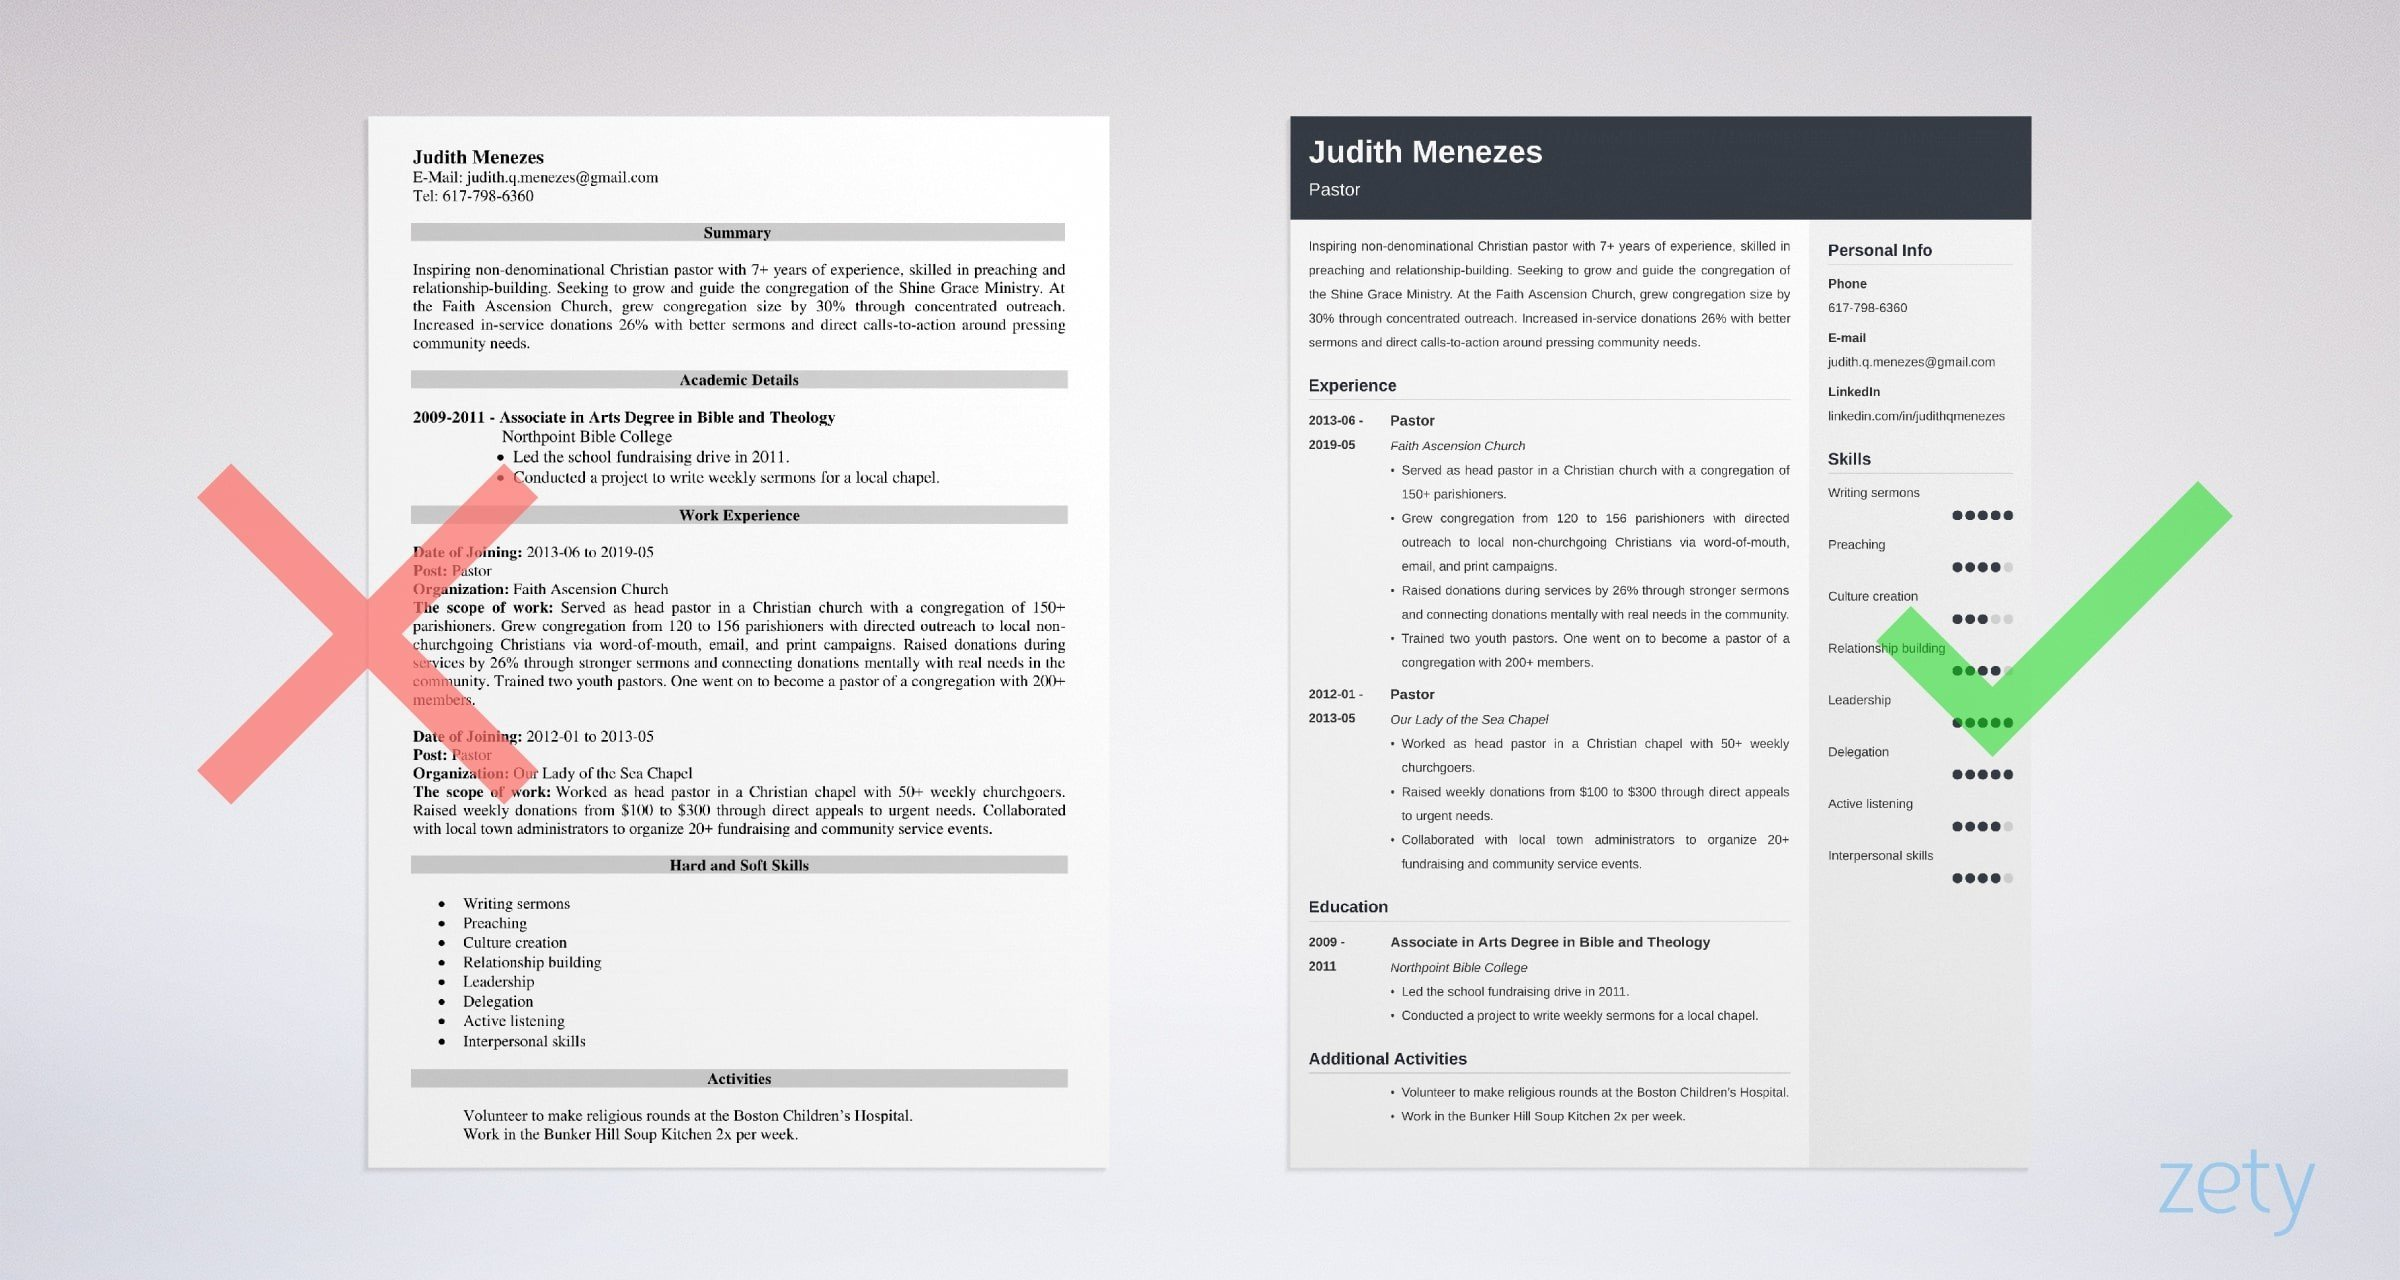 Pastor Resume Sample [Guide with Template & 20+ Examples]